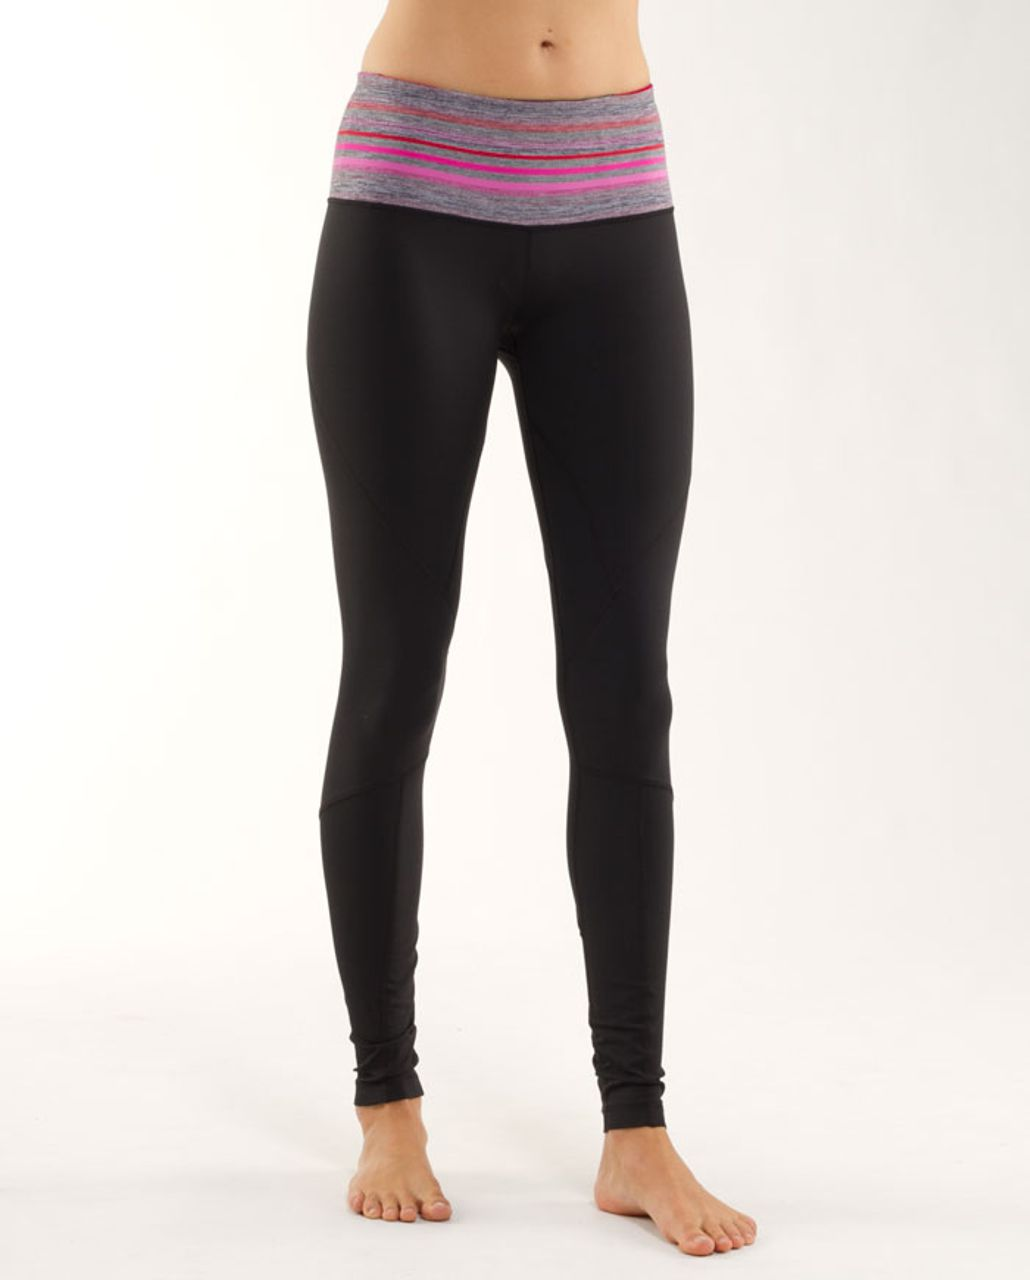 Lululemon Run:  Your Heart Out Tight - Black /  Currant Elevation Stripe /  Heathered Dark Black